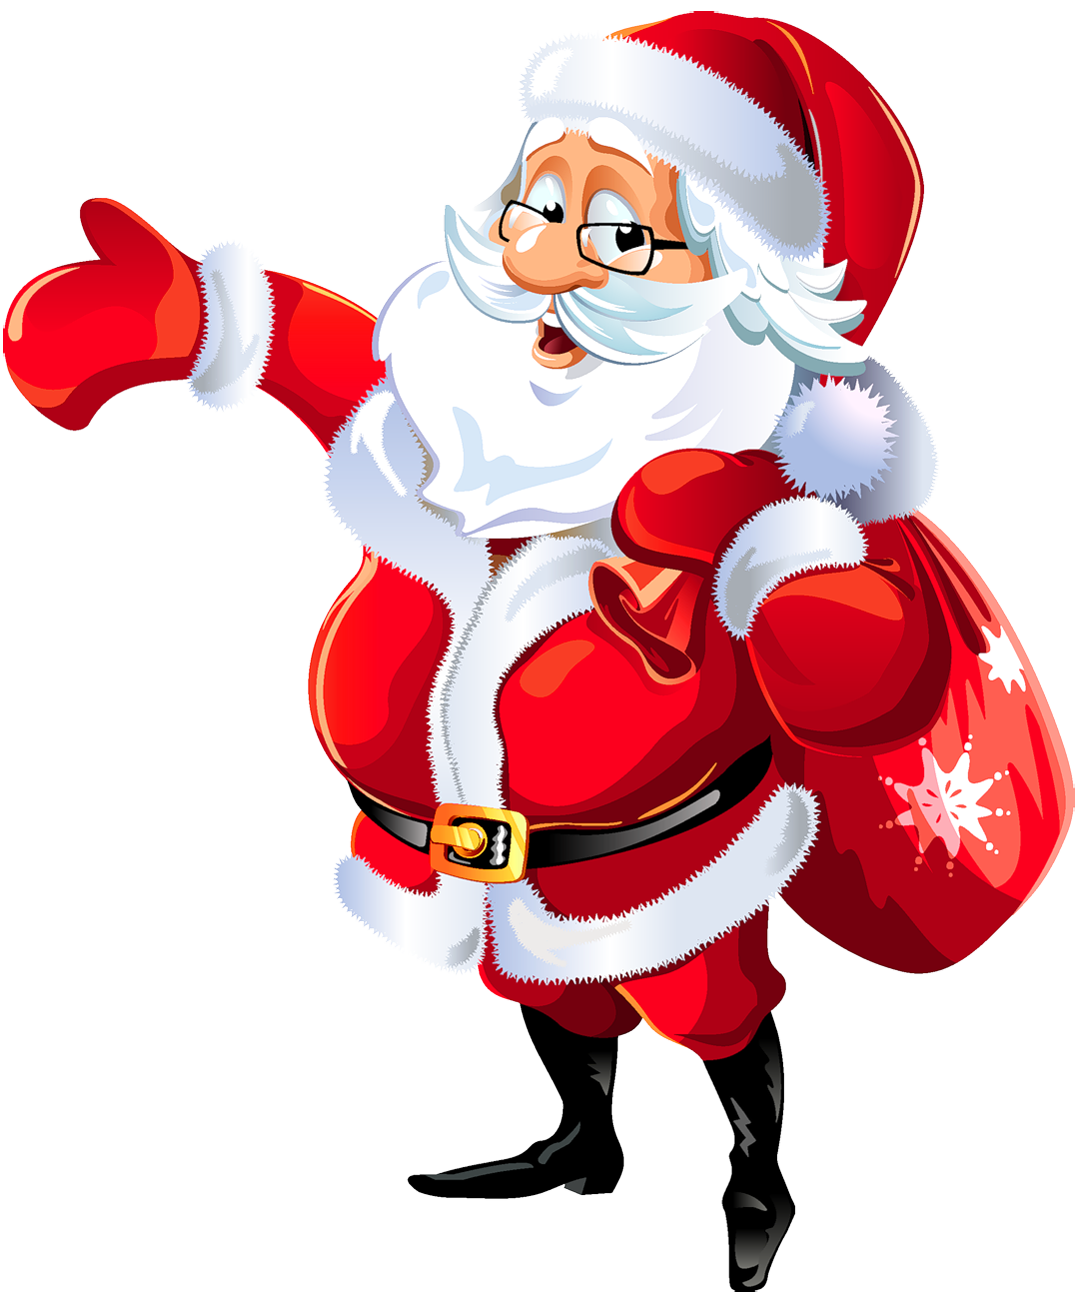 Santa Claus Background Picture For Desktop PC